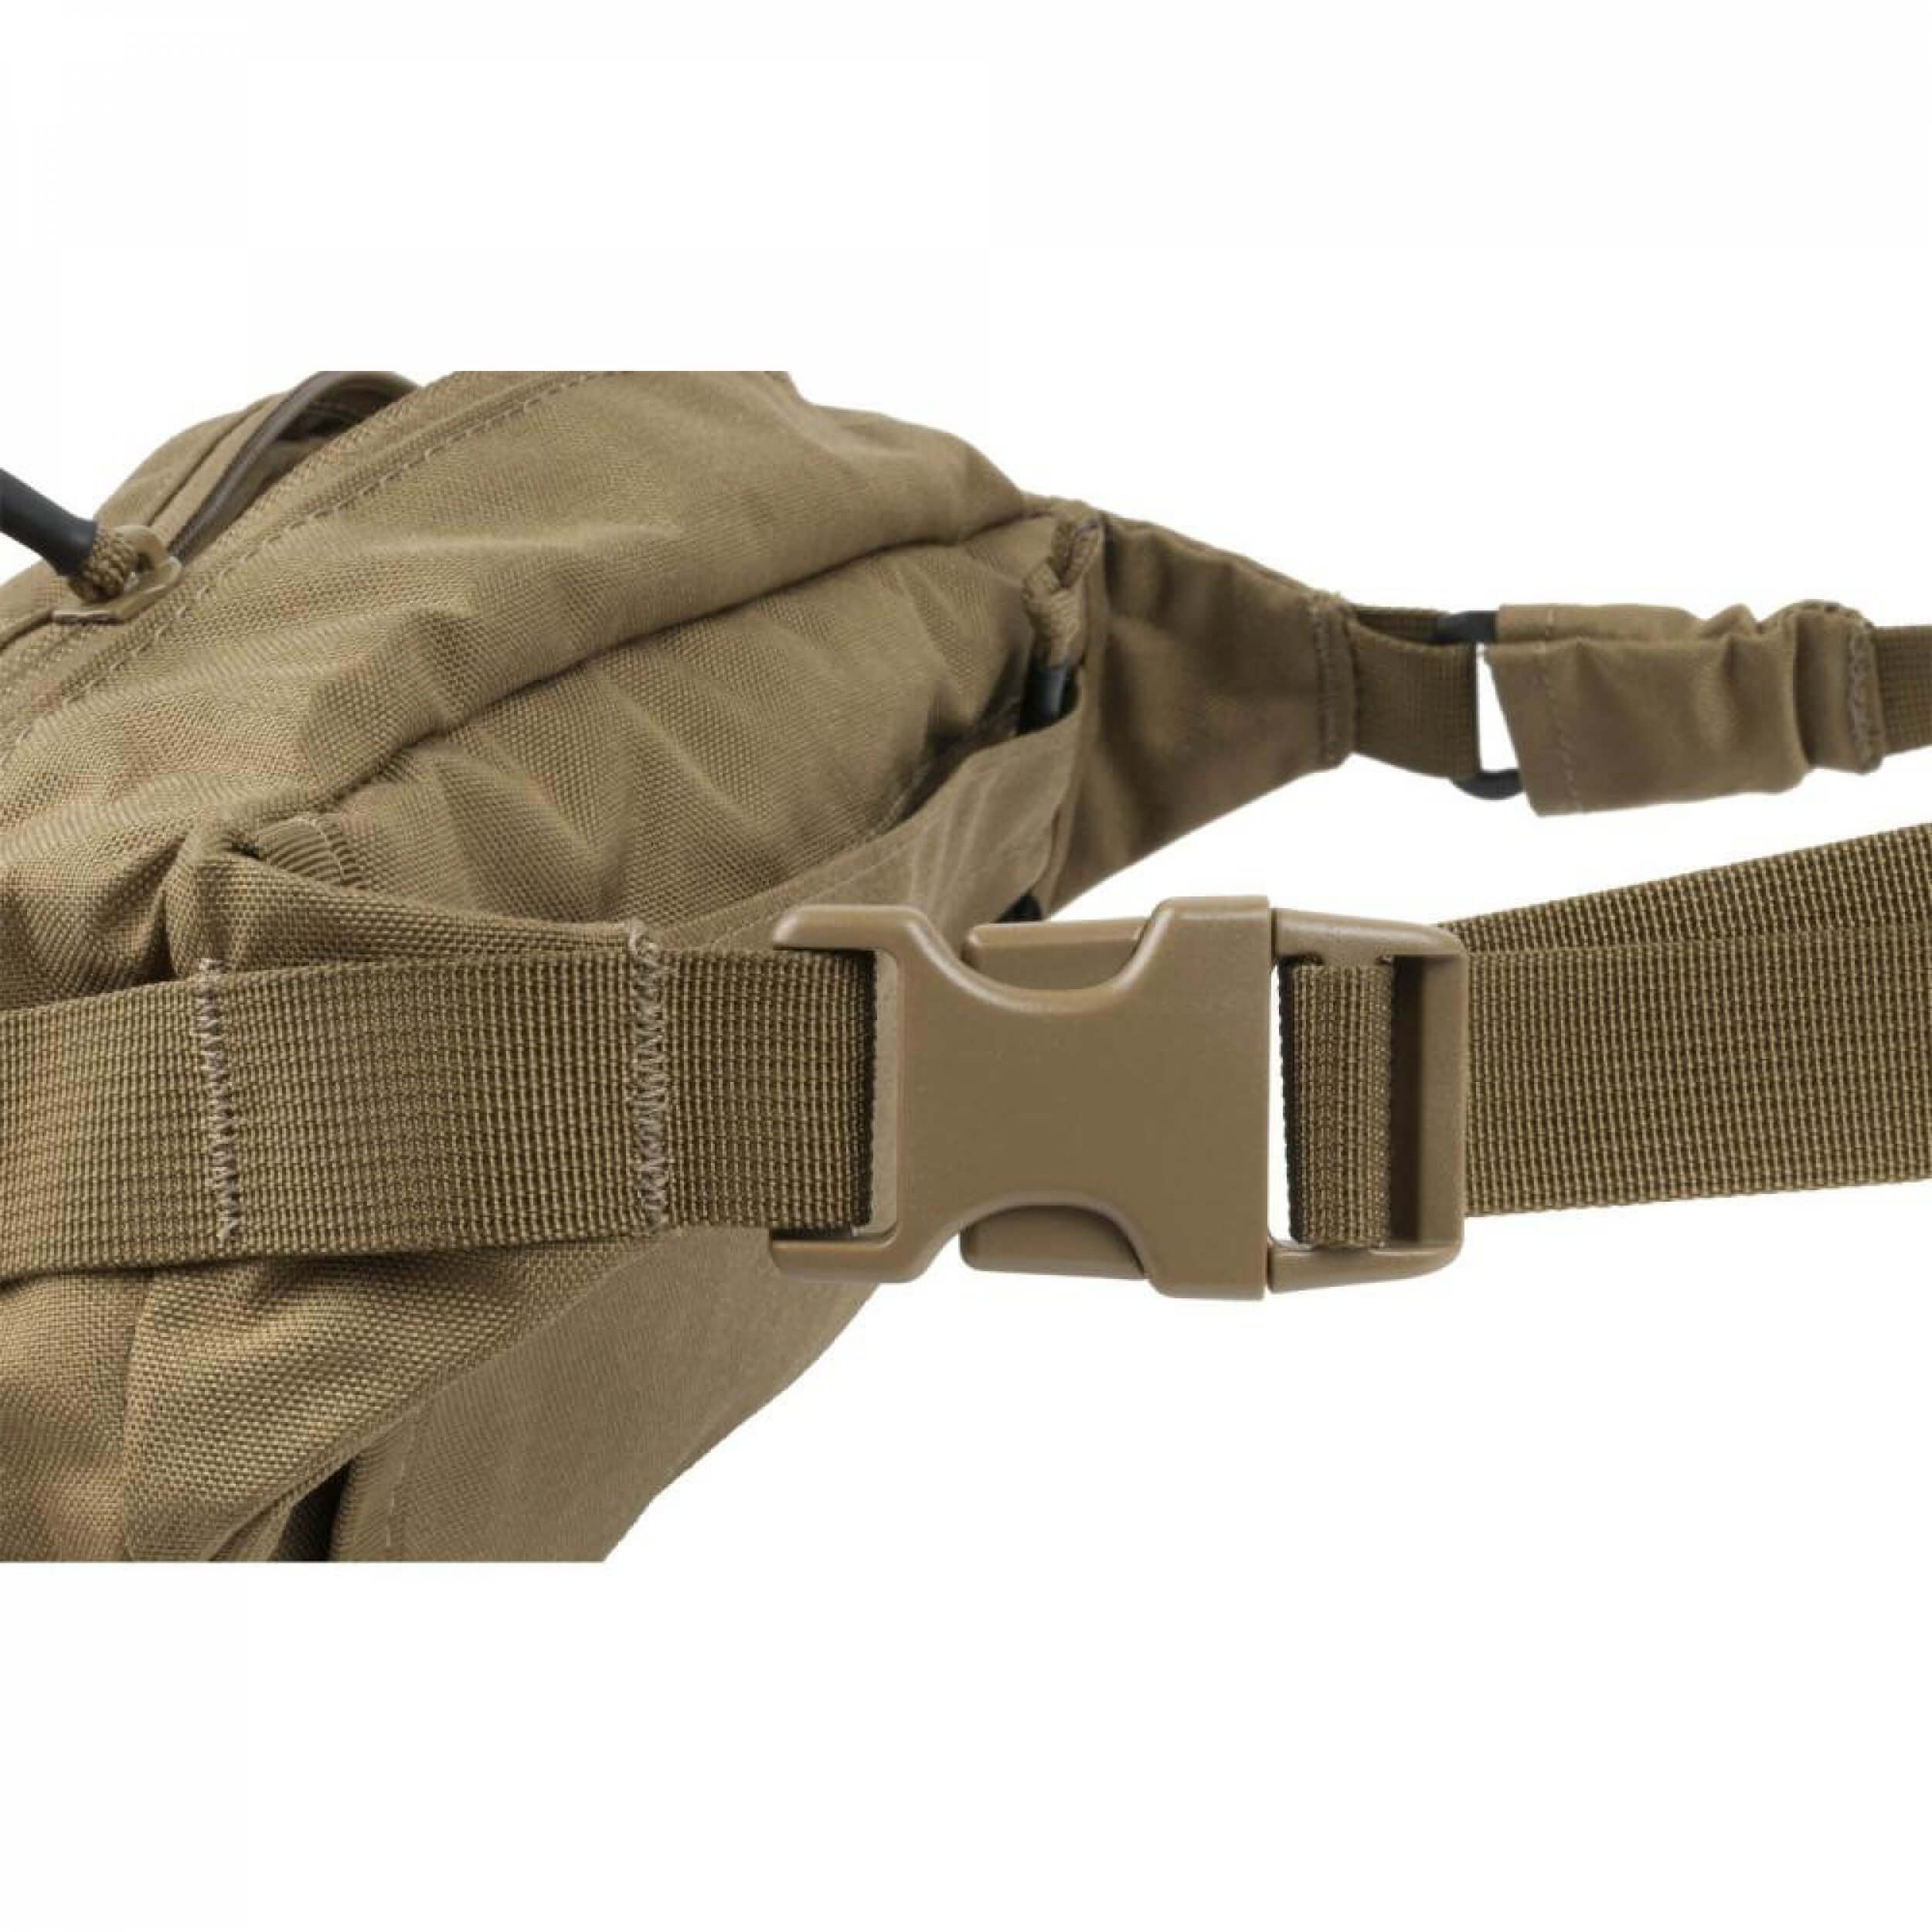 Helikon-Tex Waist Pack Possum Coyote / Adaptive Green A